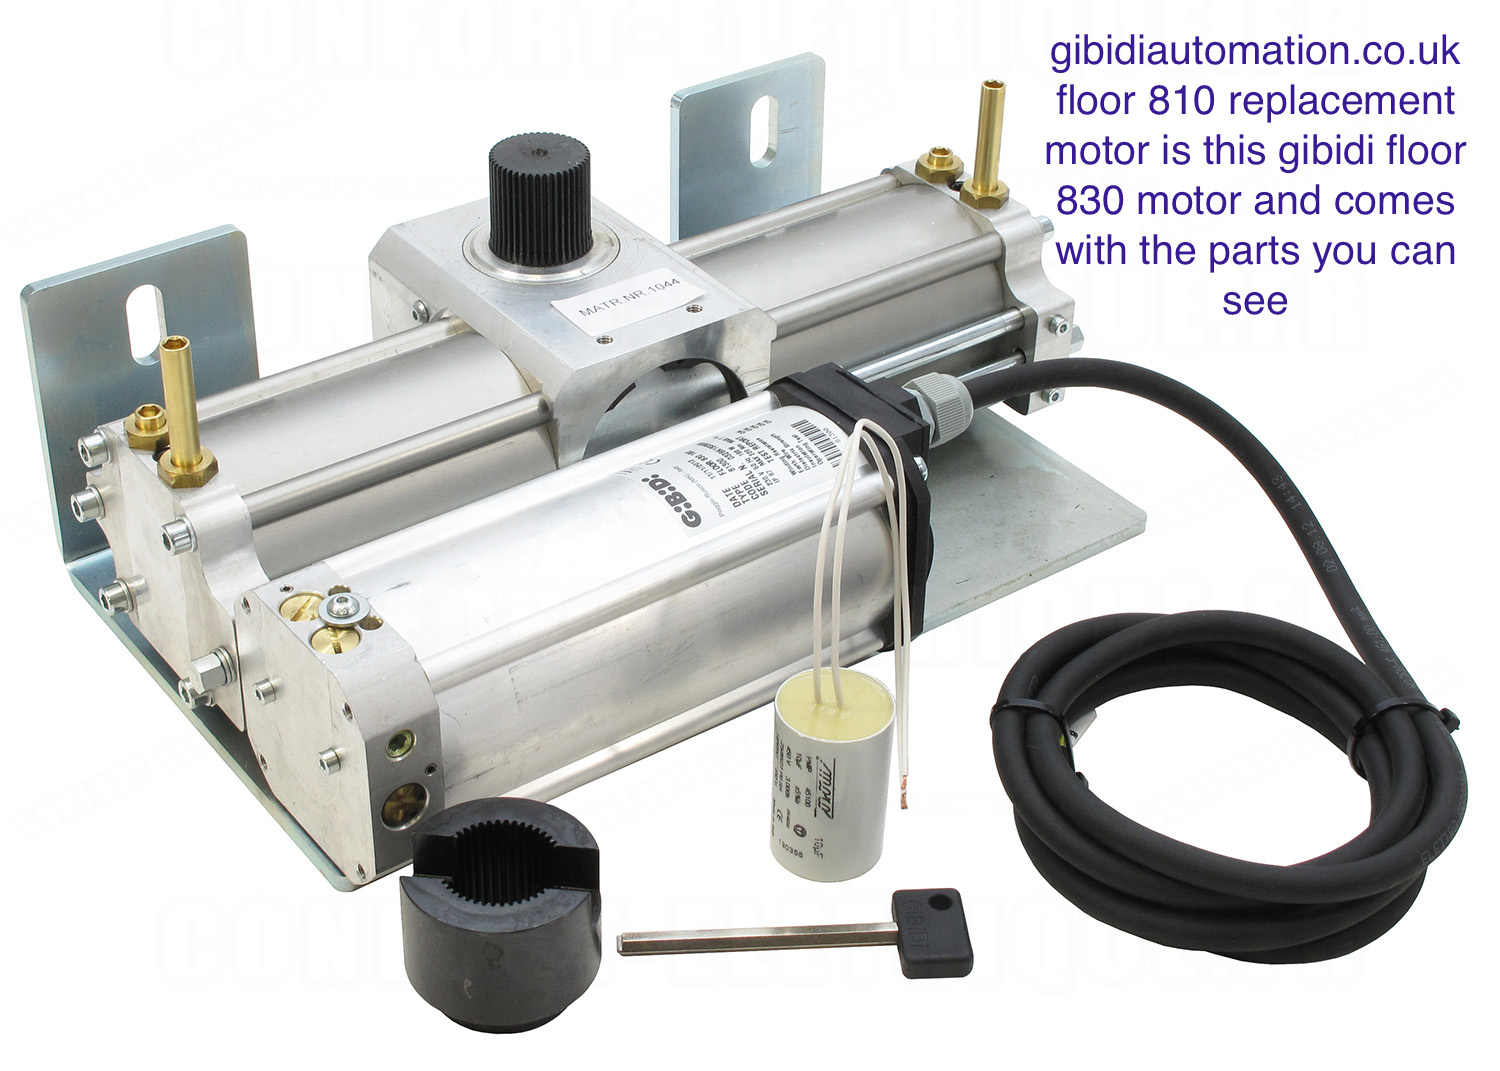 81300 Gibidi Floor 830 Hydraulic Gate Motor Is Now Discontinued & Replaced With New Floor 880